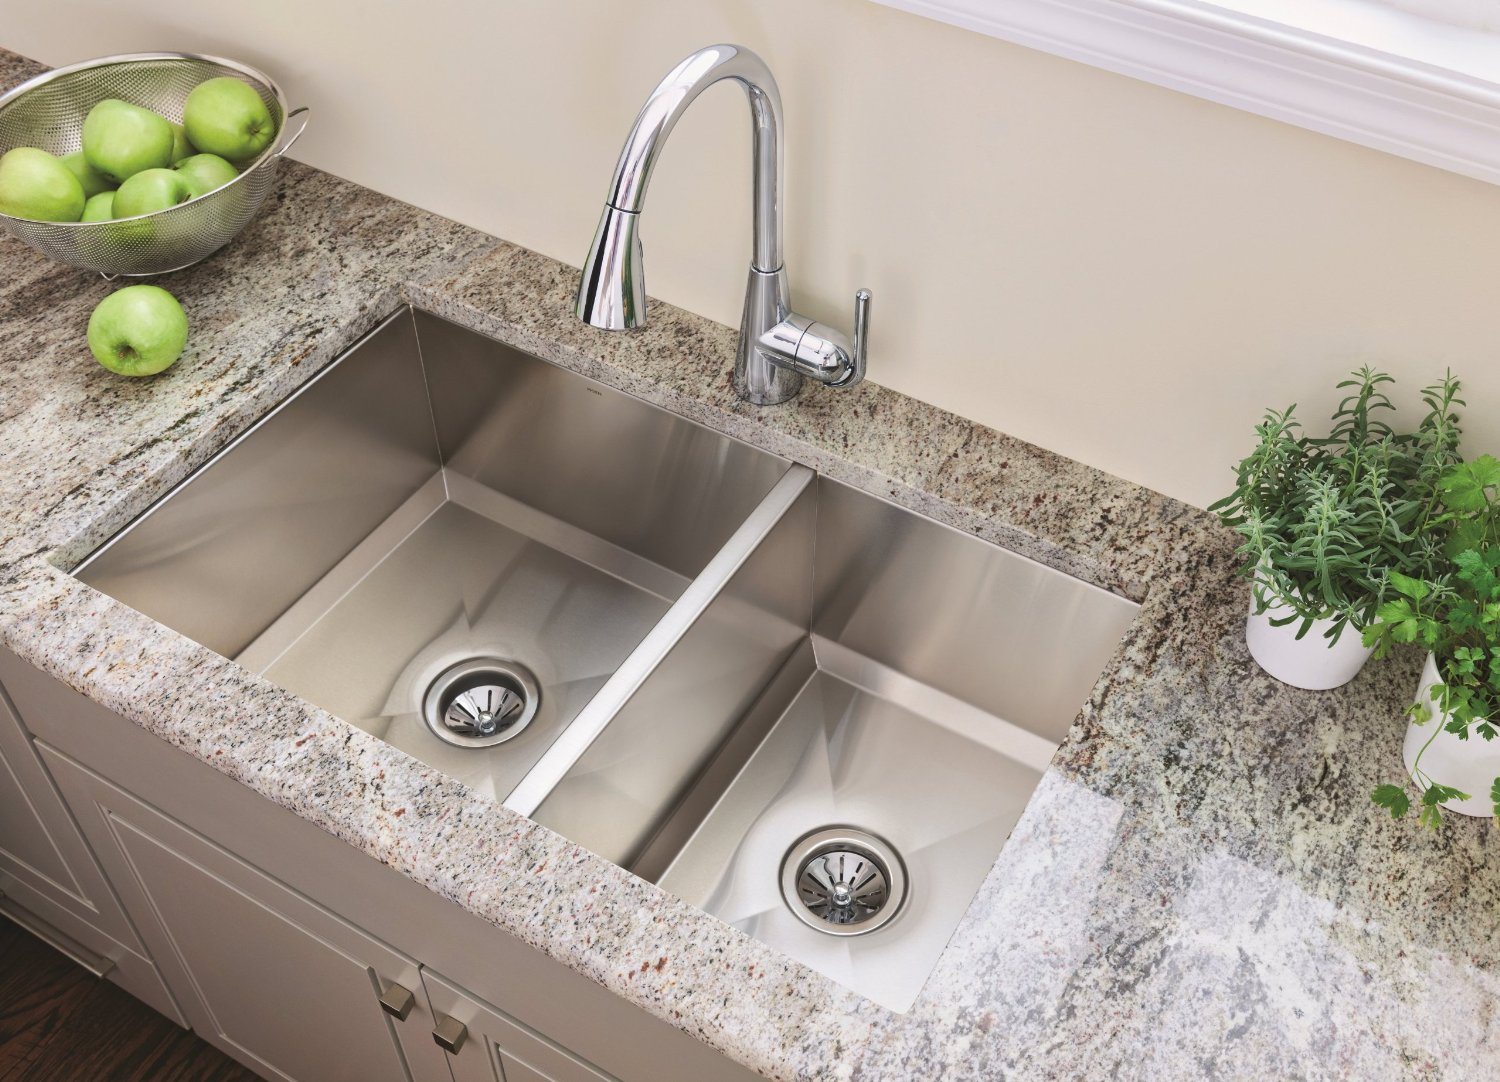 Granite Kitchen Sinks Undermount Kitchen Sinks For Granite Countertops